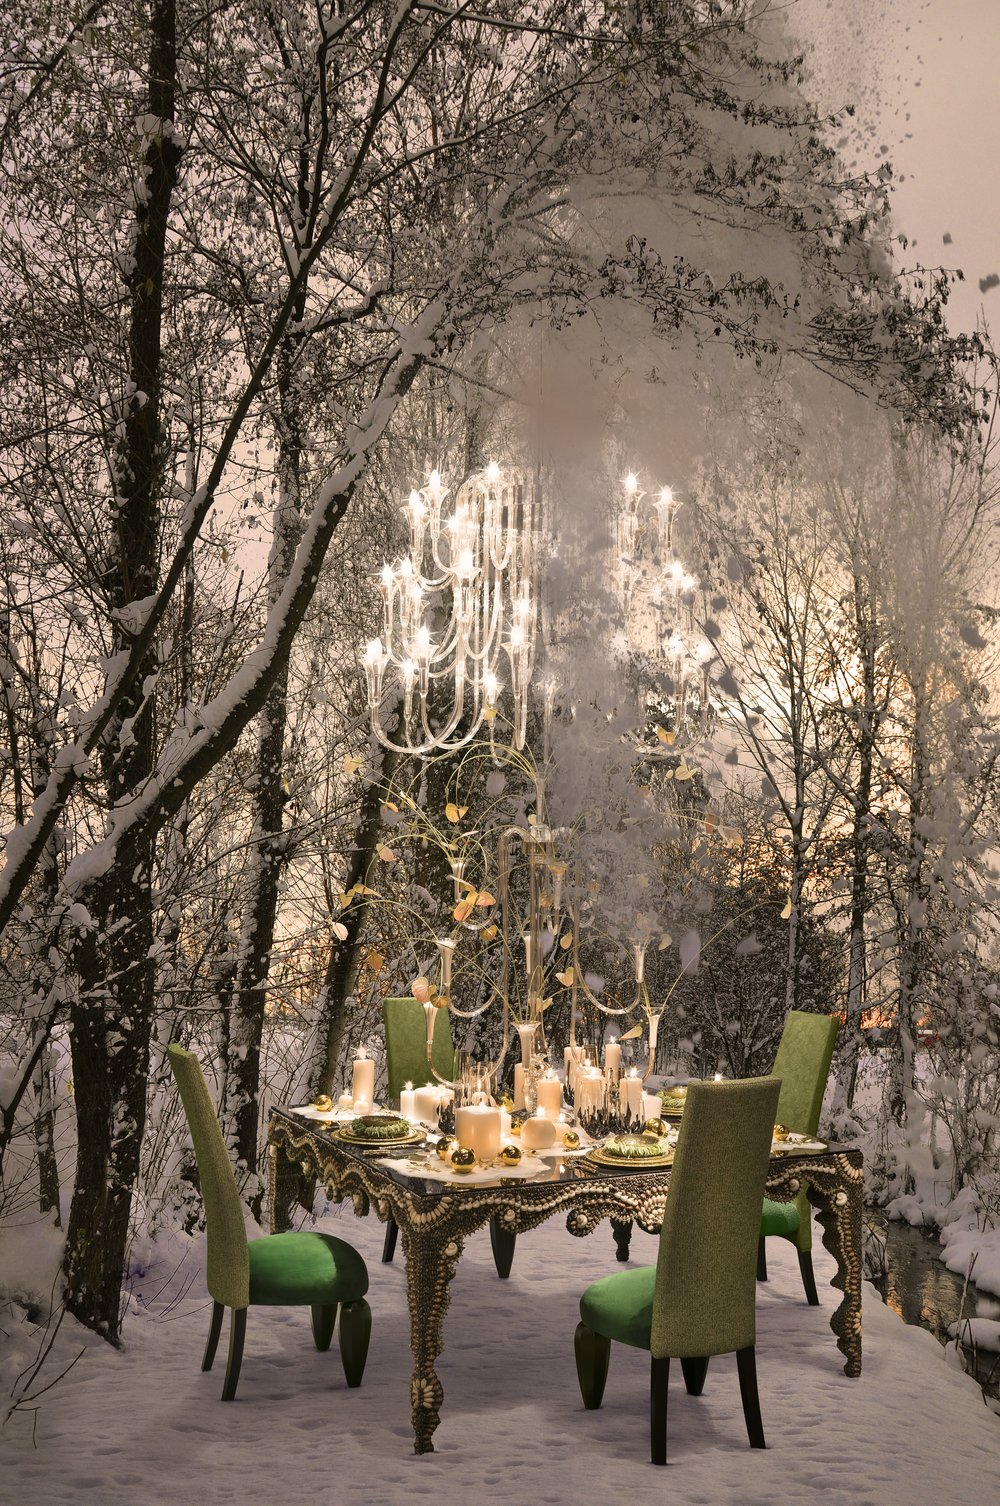 Interiors Advent Calendar - Christmas dining by VG New Trend @ Masha Shapiro Agency.jpg